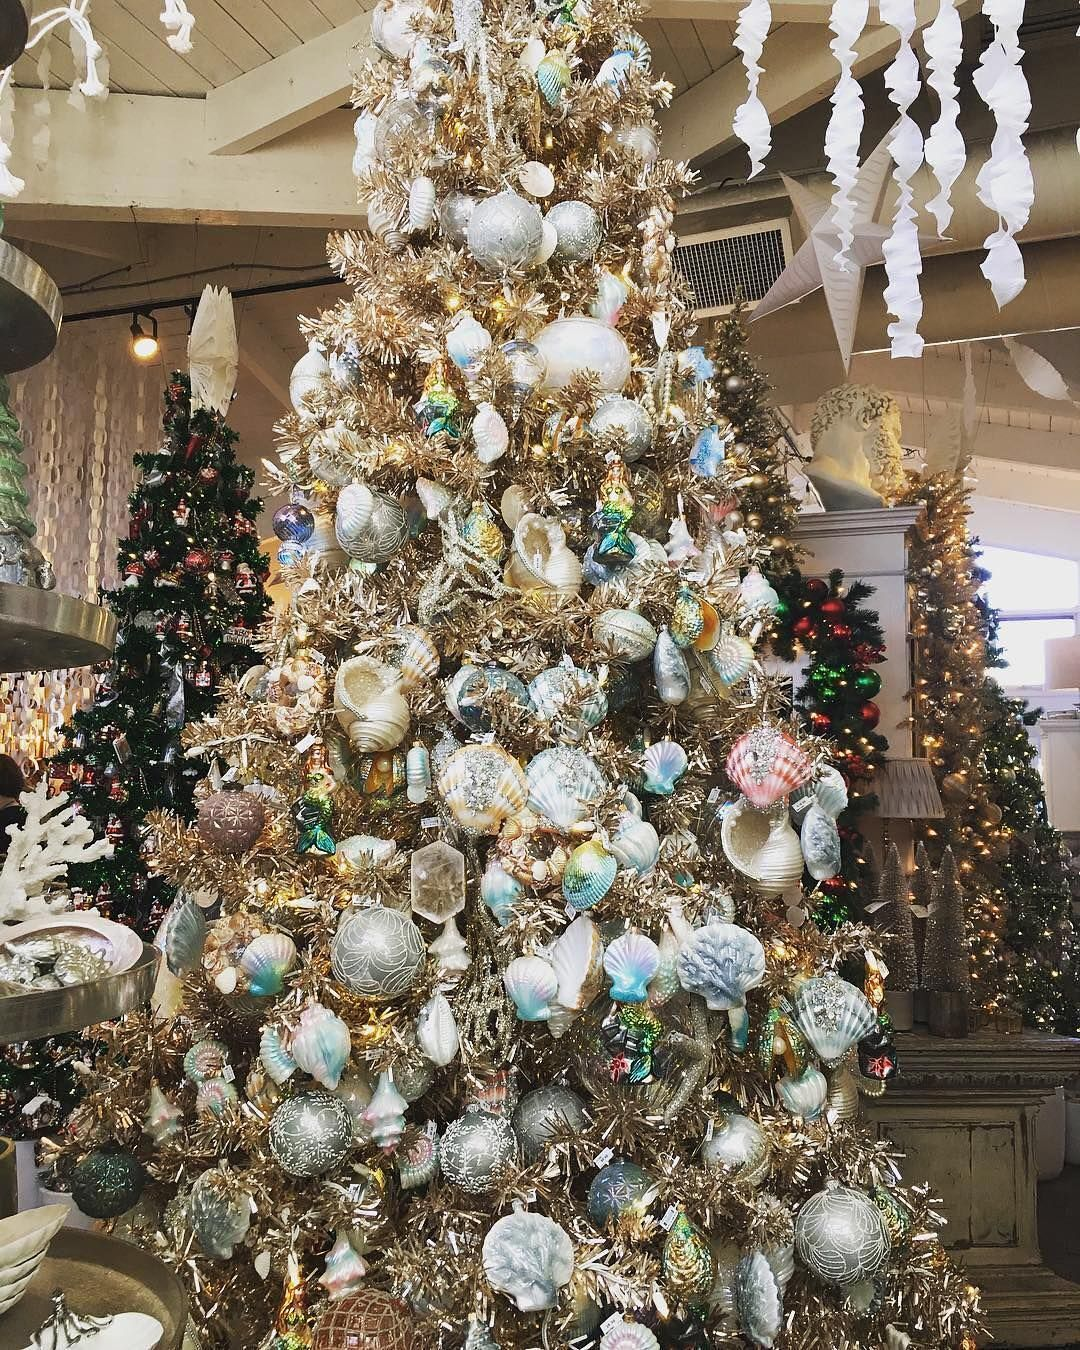 b274bc266ed5eab94a7d75947ab10c03 - When Does Rogers Gardens Decorated For Christmas